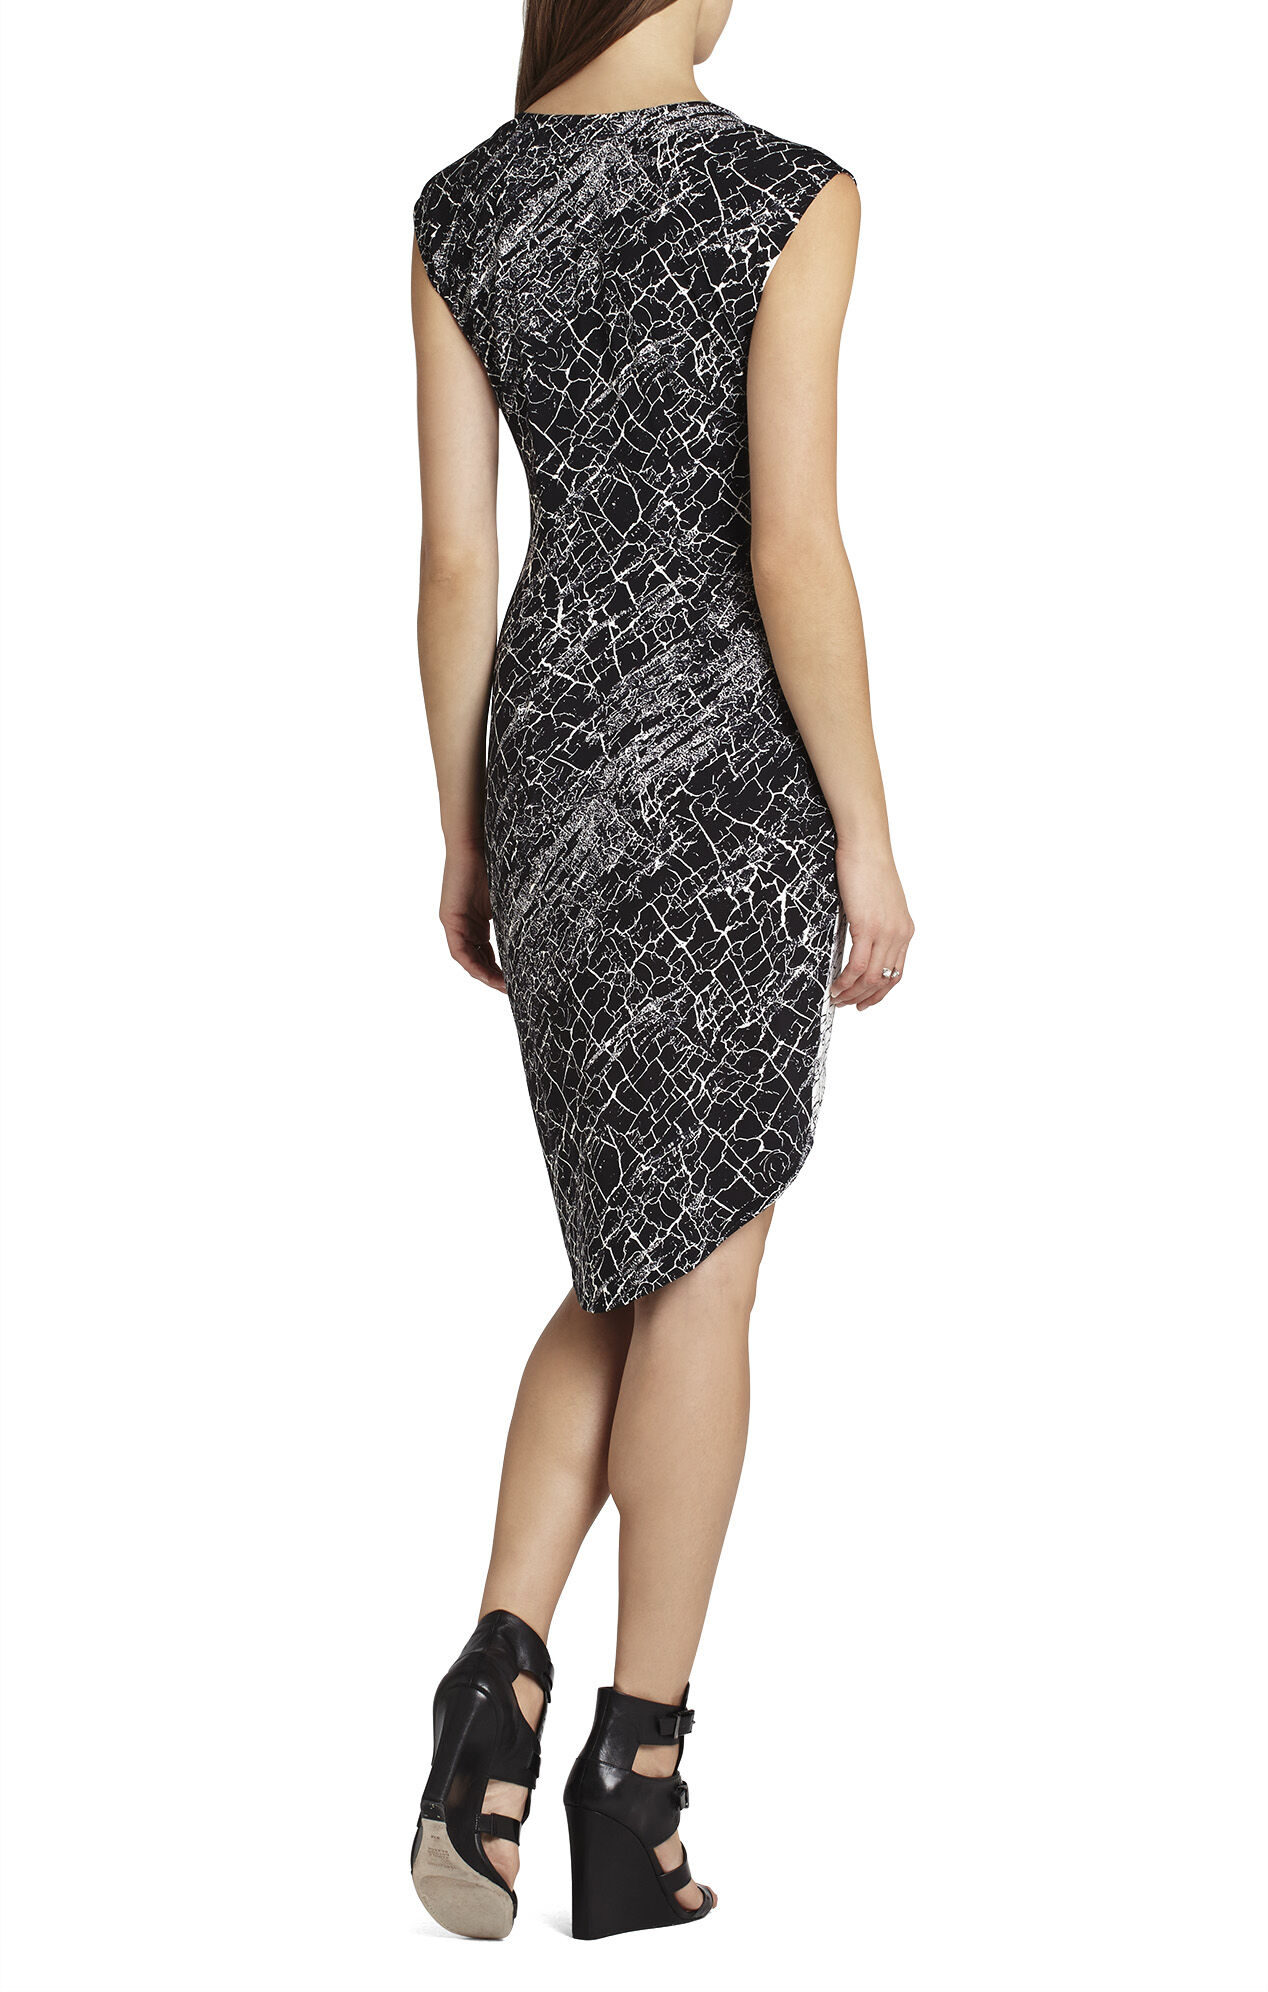 Tiffanie Cap-Sleeve Print-Blocked Dress